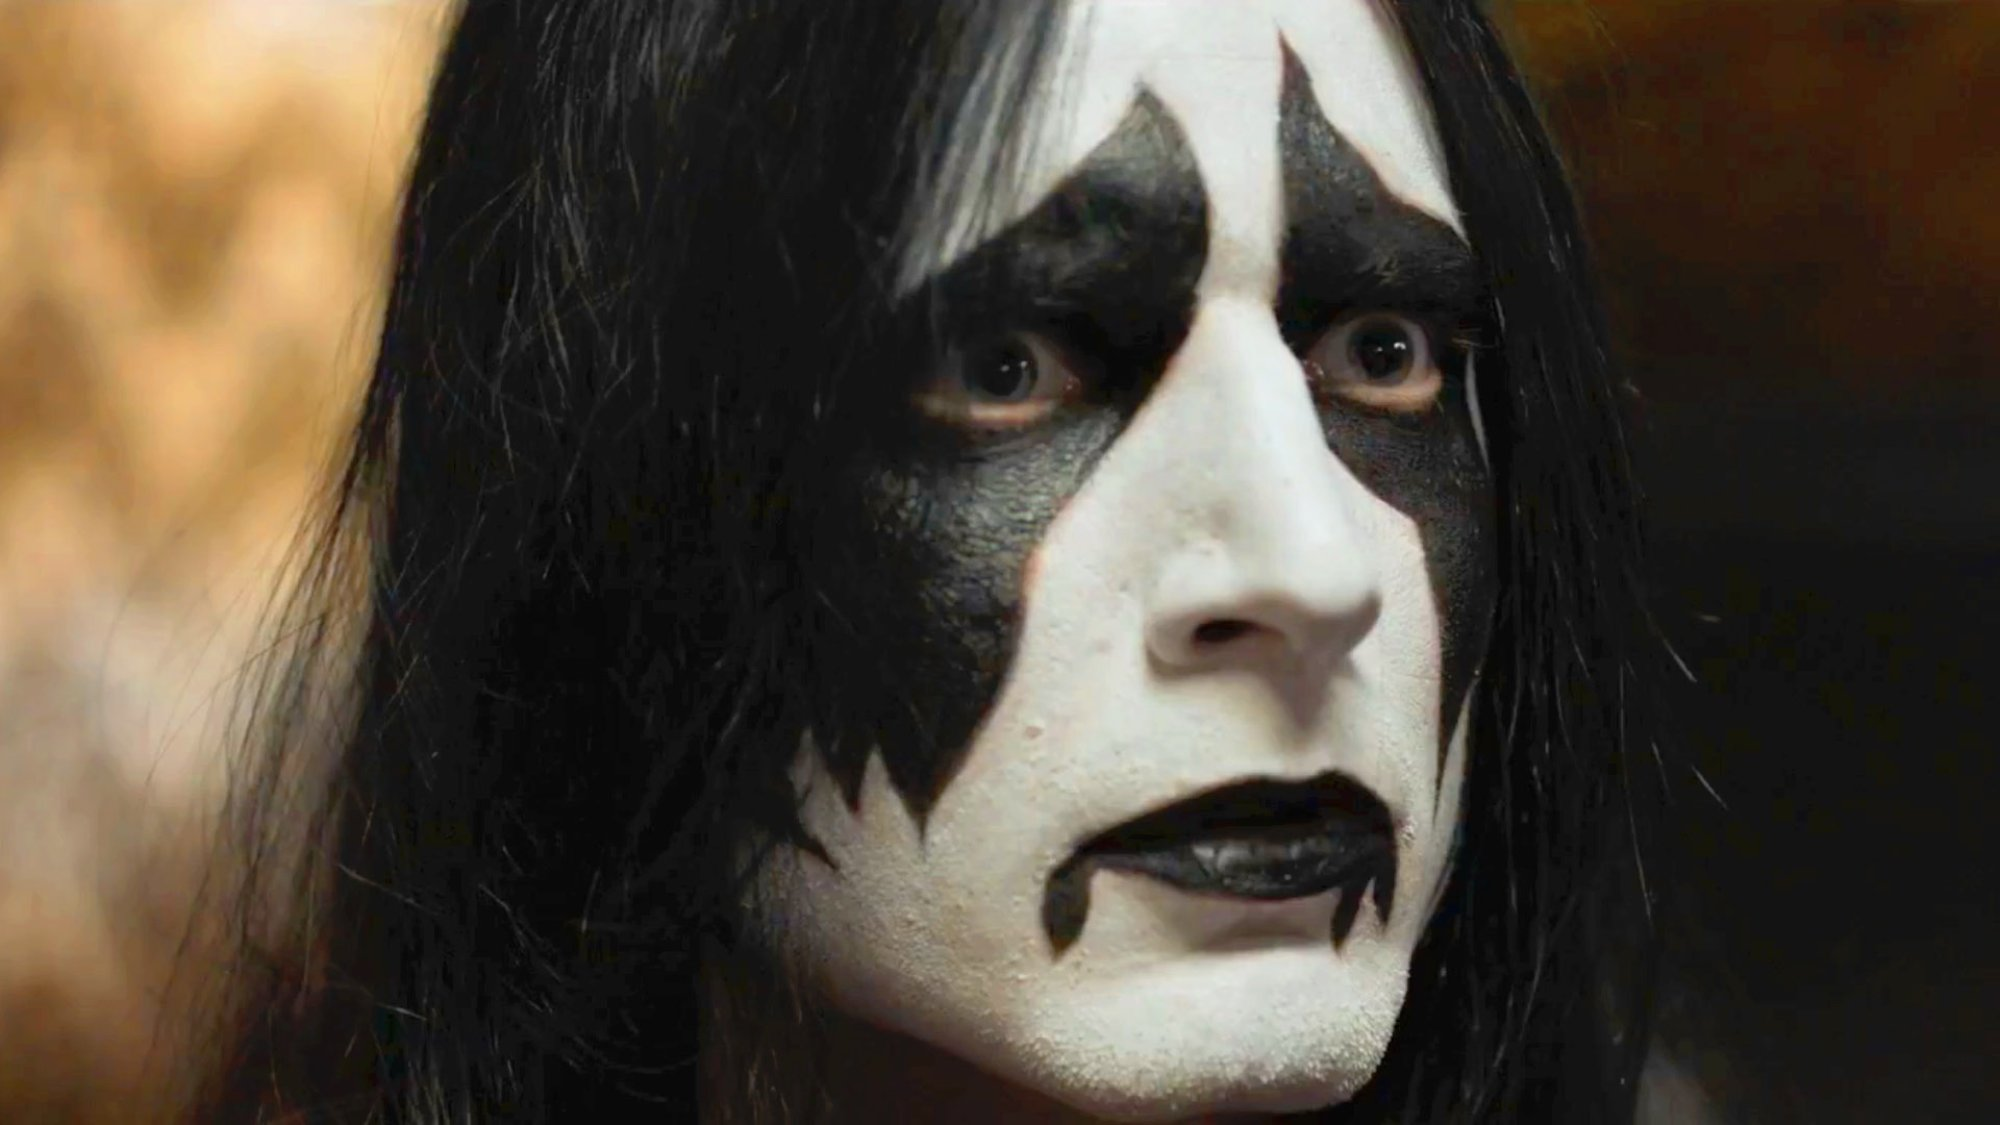 screen shot of a movie. Actor wearing corpse paint